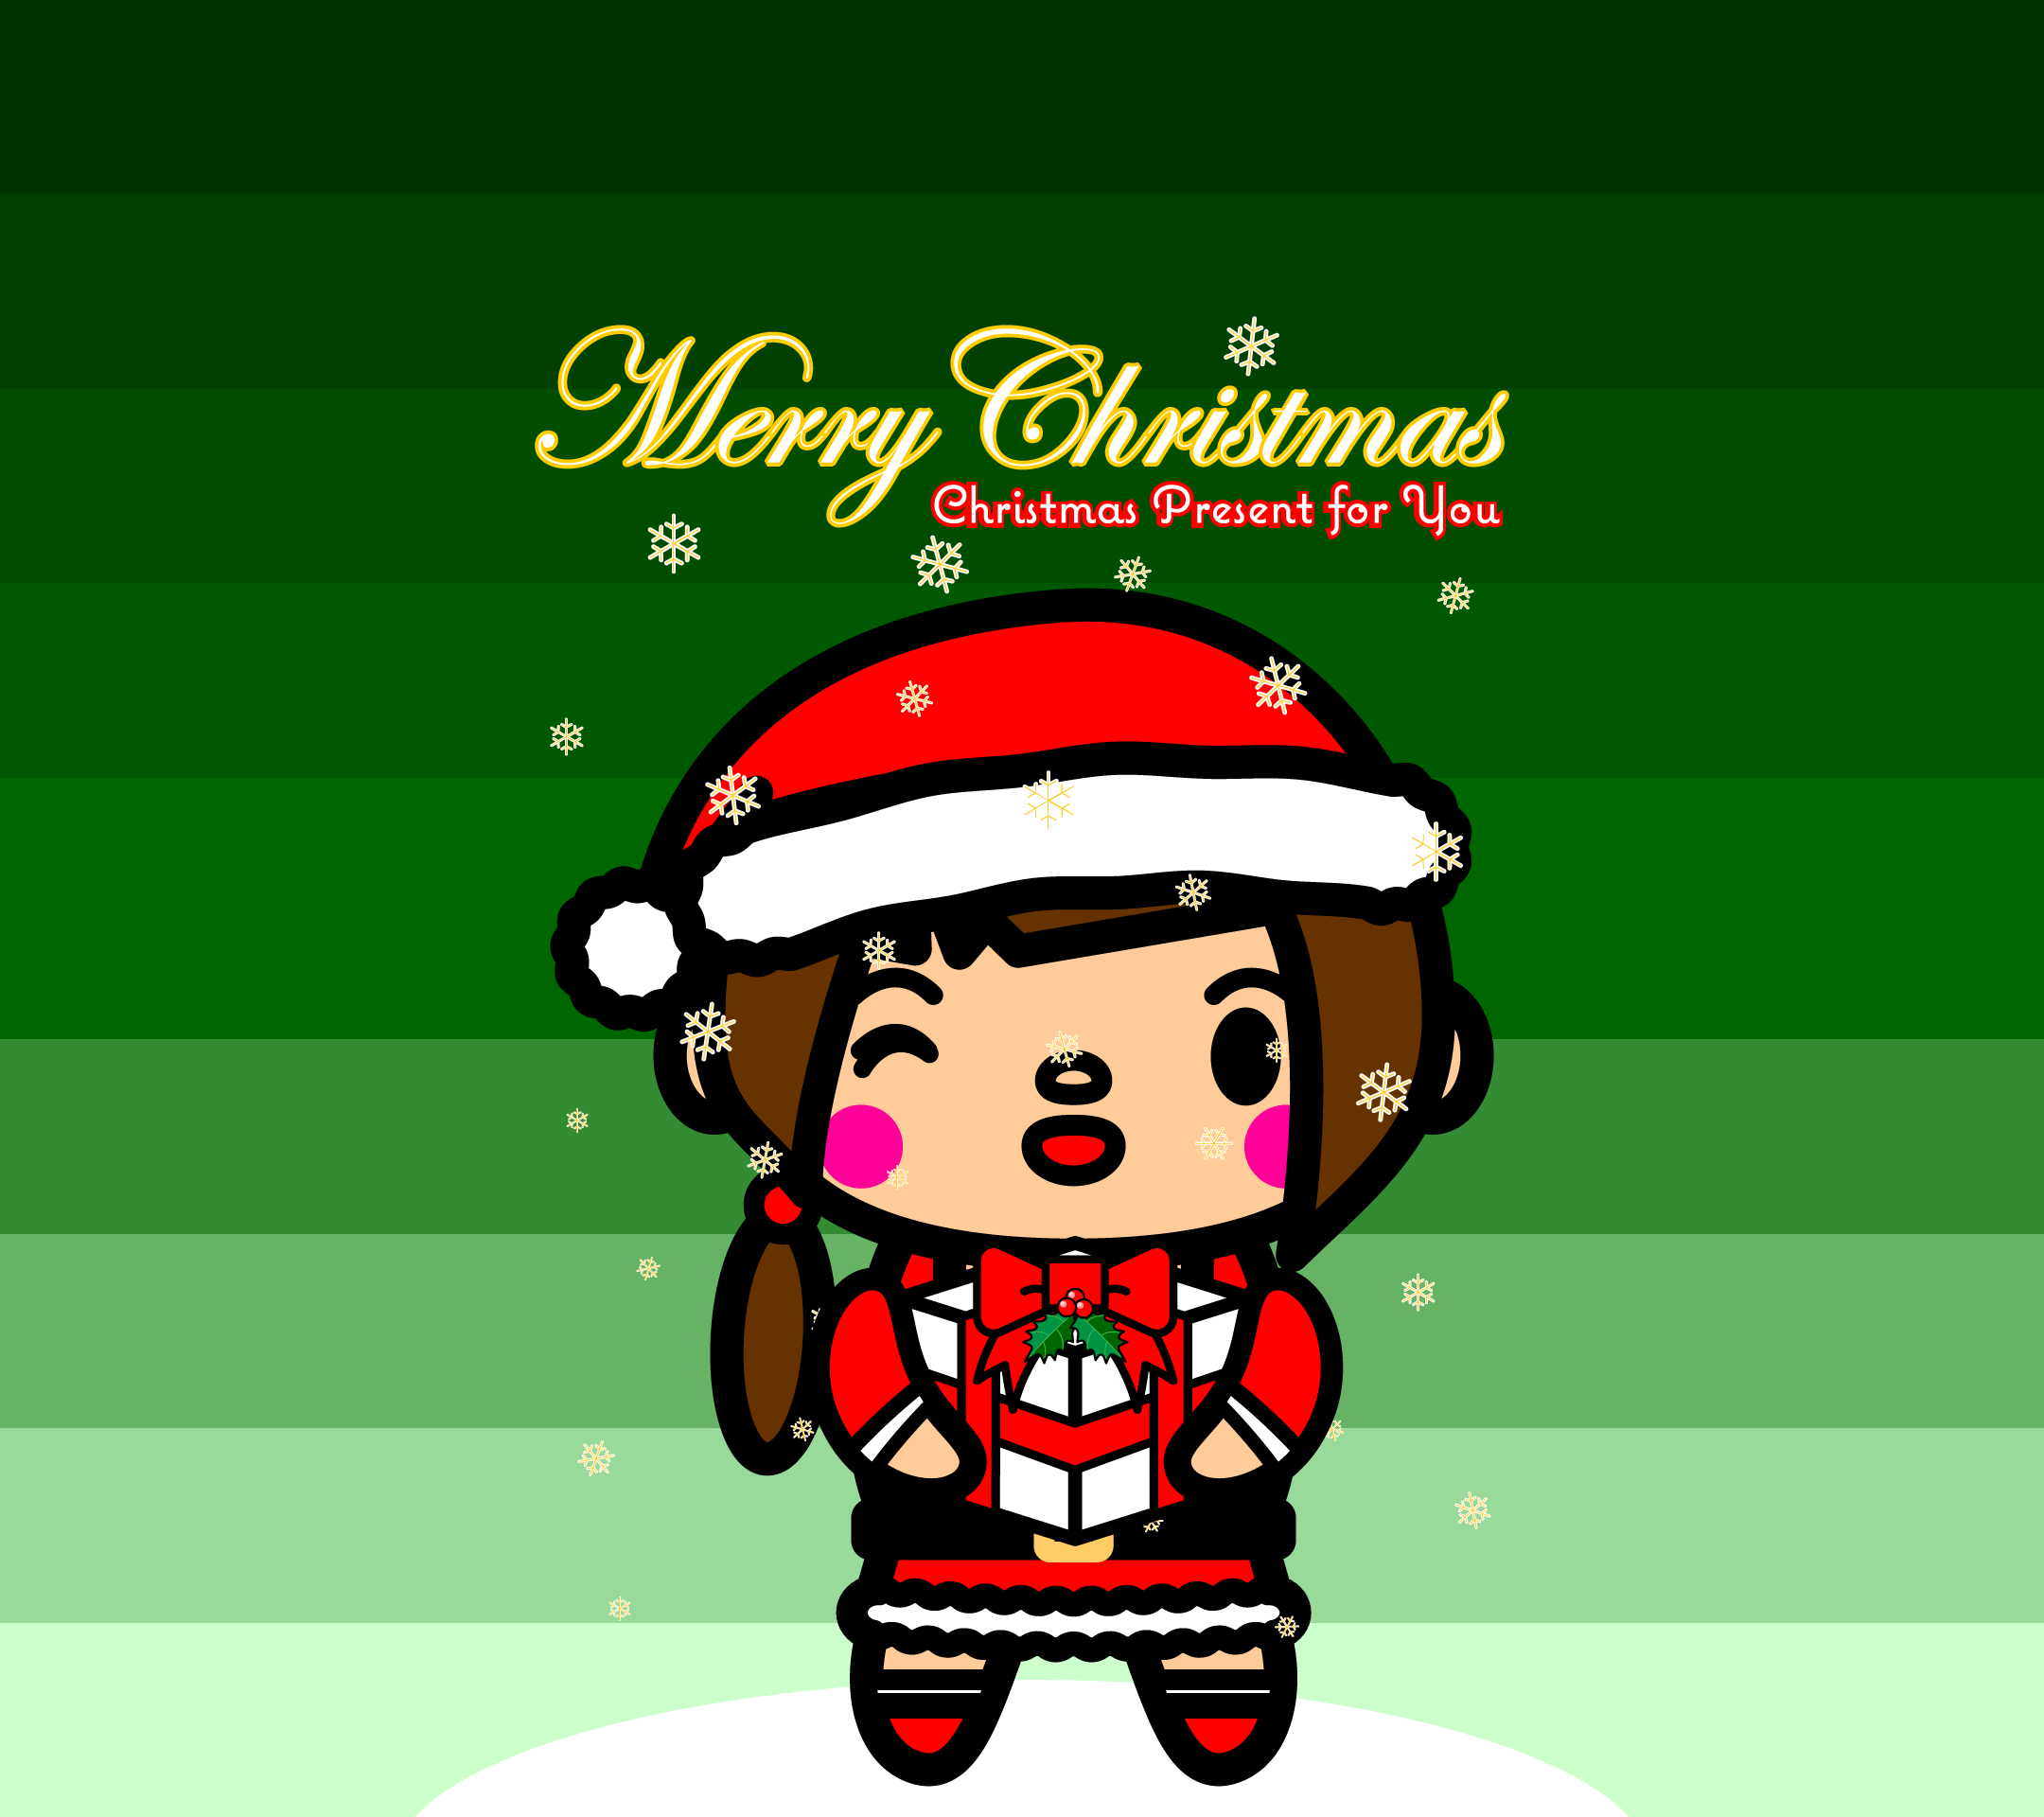 wallpaper6_christmas-santawoman-green-android